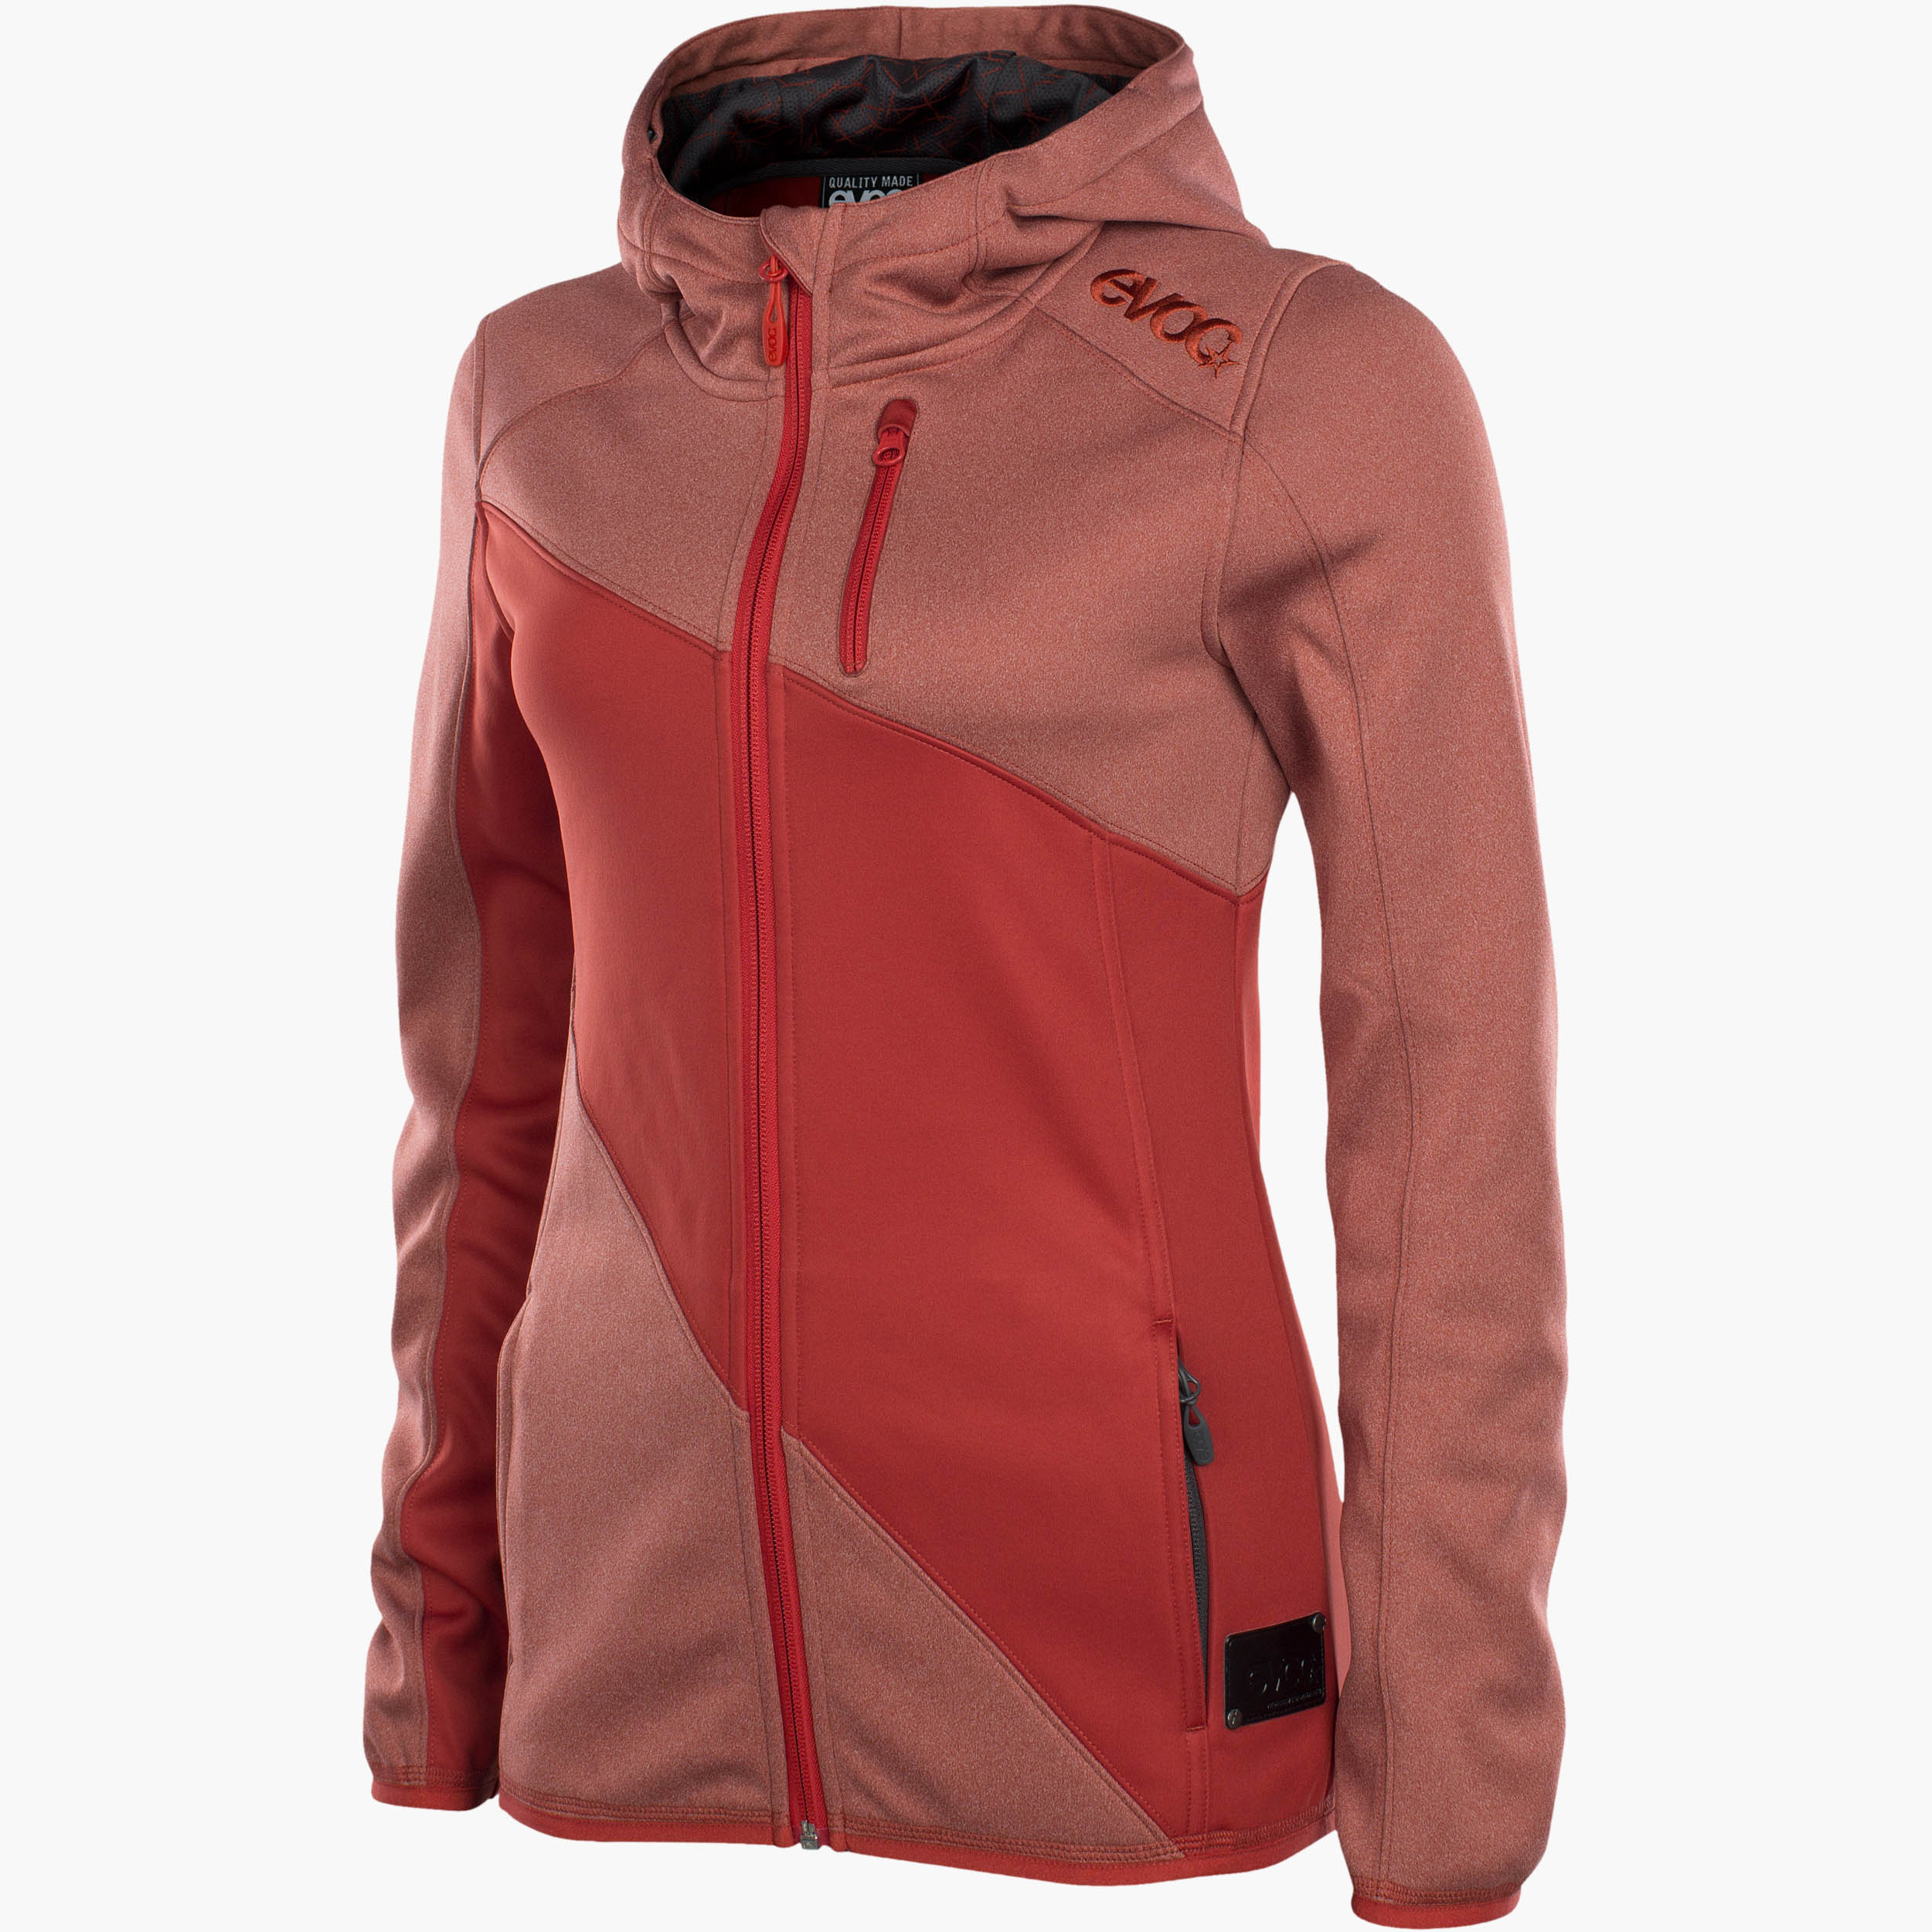 HOODY JACKET WOMEN